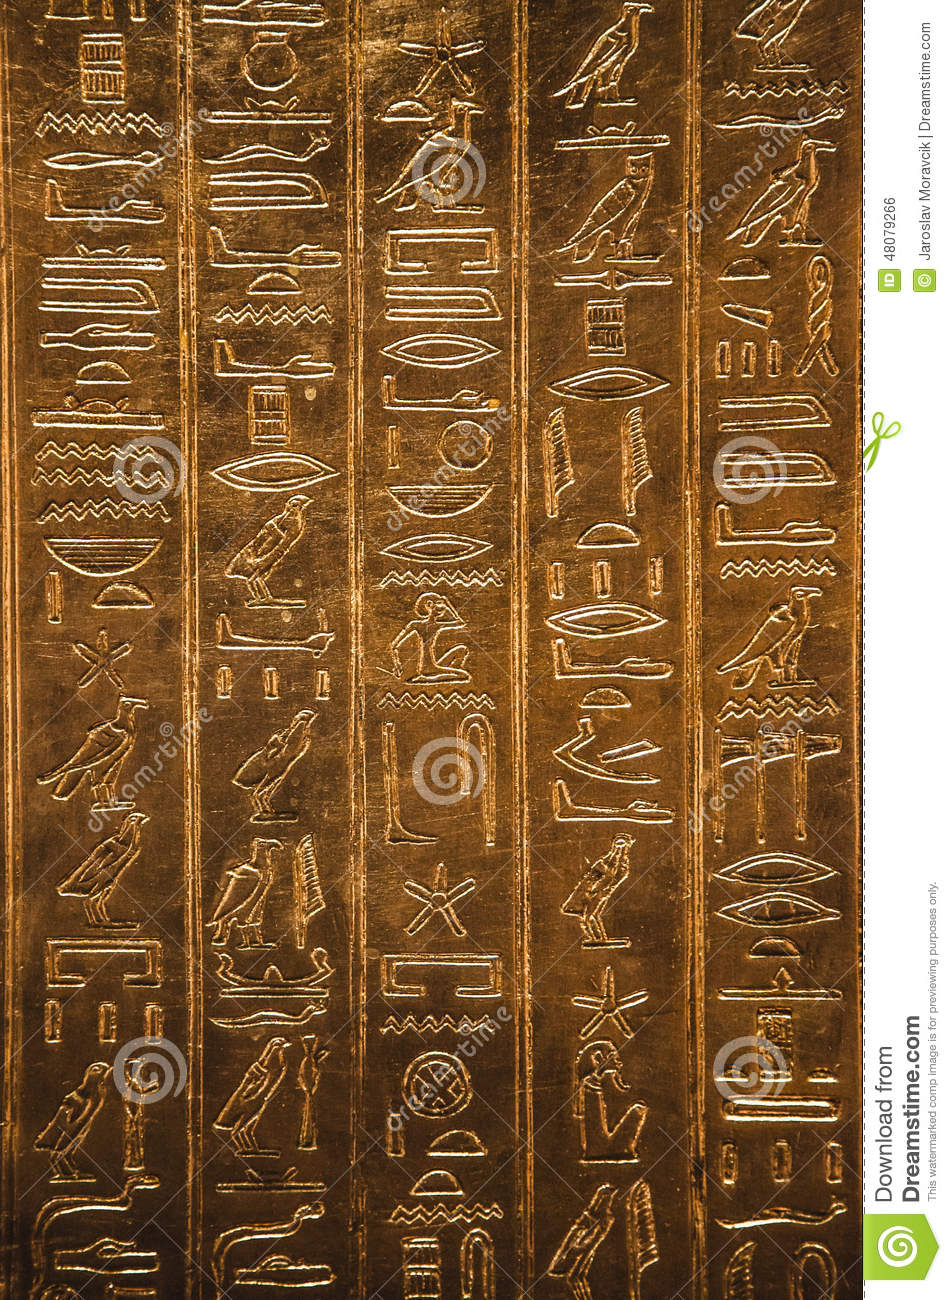 Egyptian Hieroglyphics Stock Photo - Image: 48079266